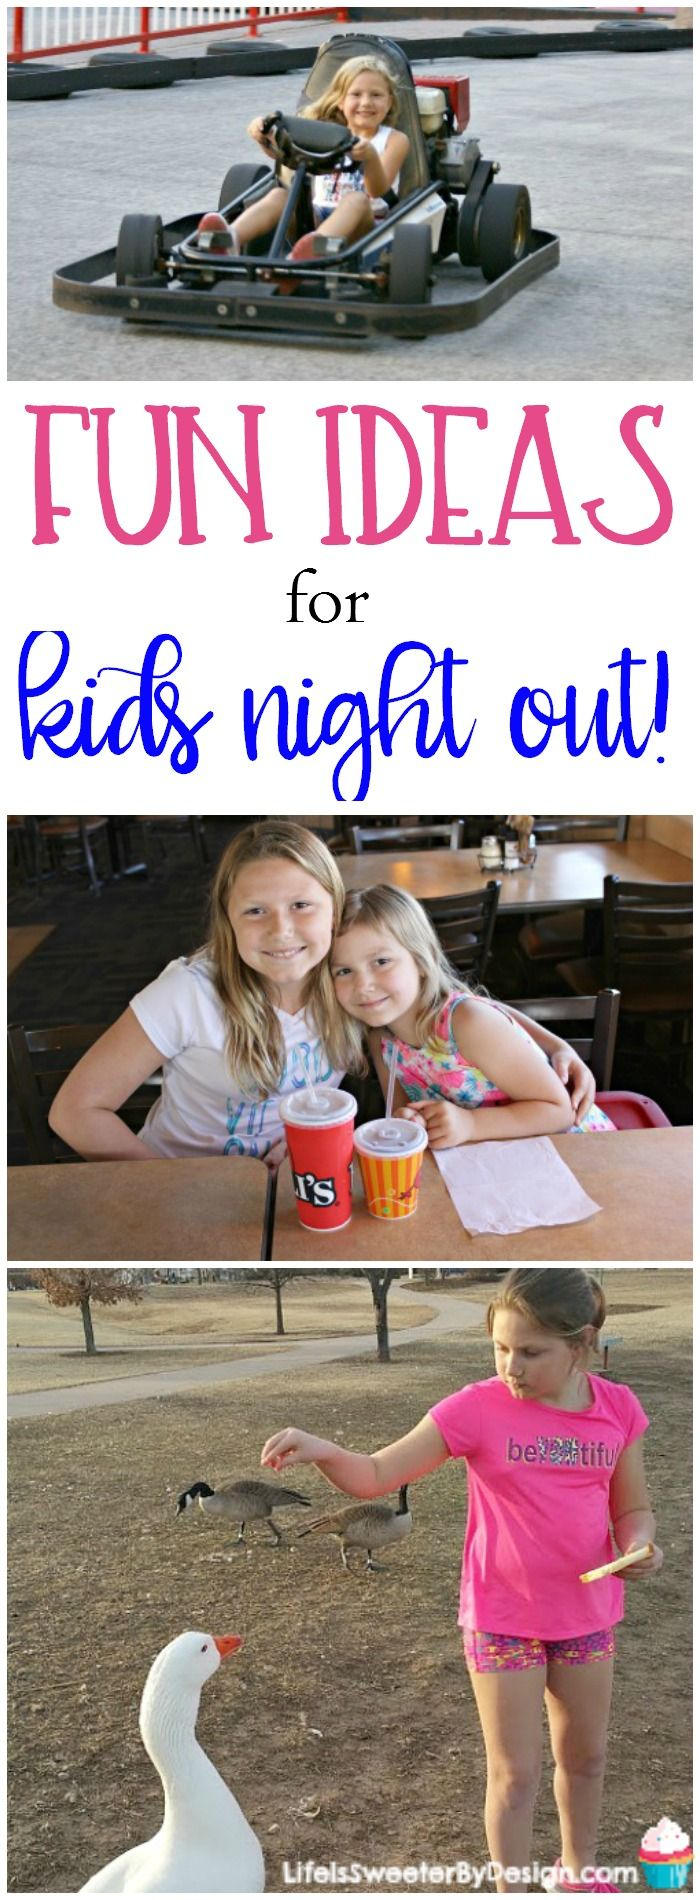 Kids night out is fun for the whole family. Check out these great ideas for family fun and how we love to start our night. AD